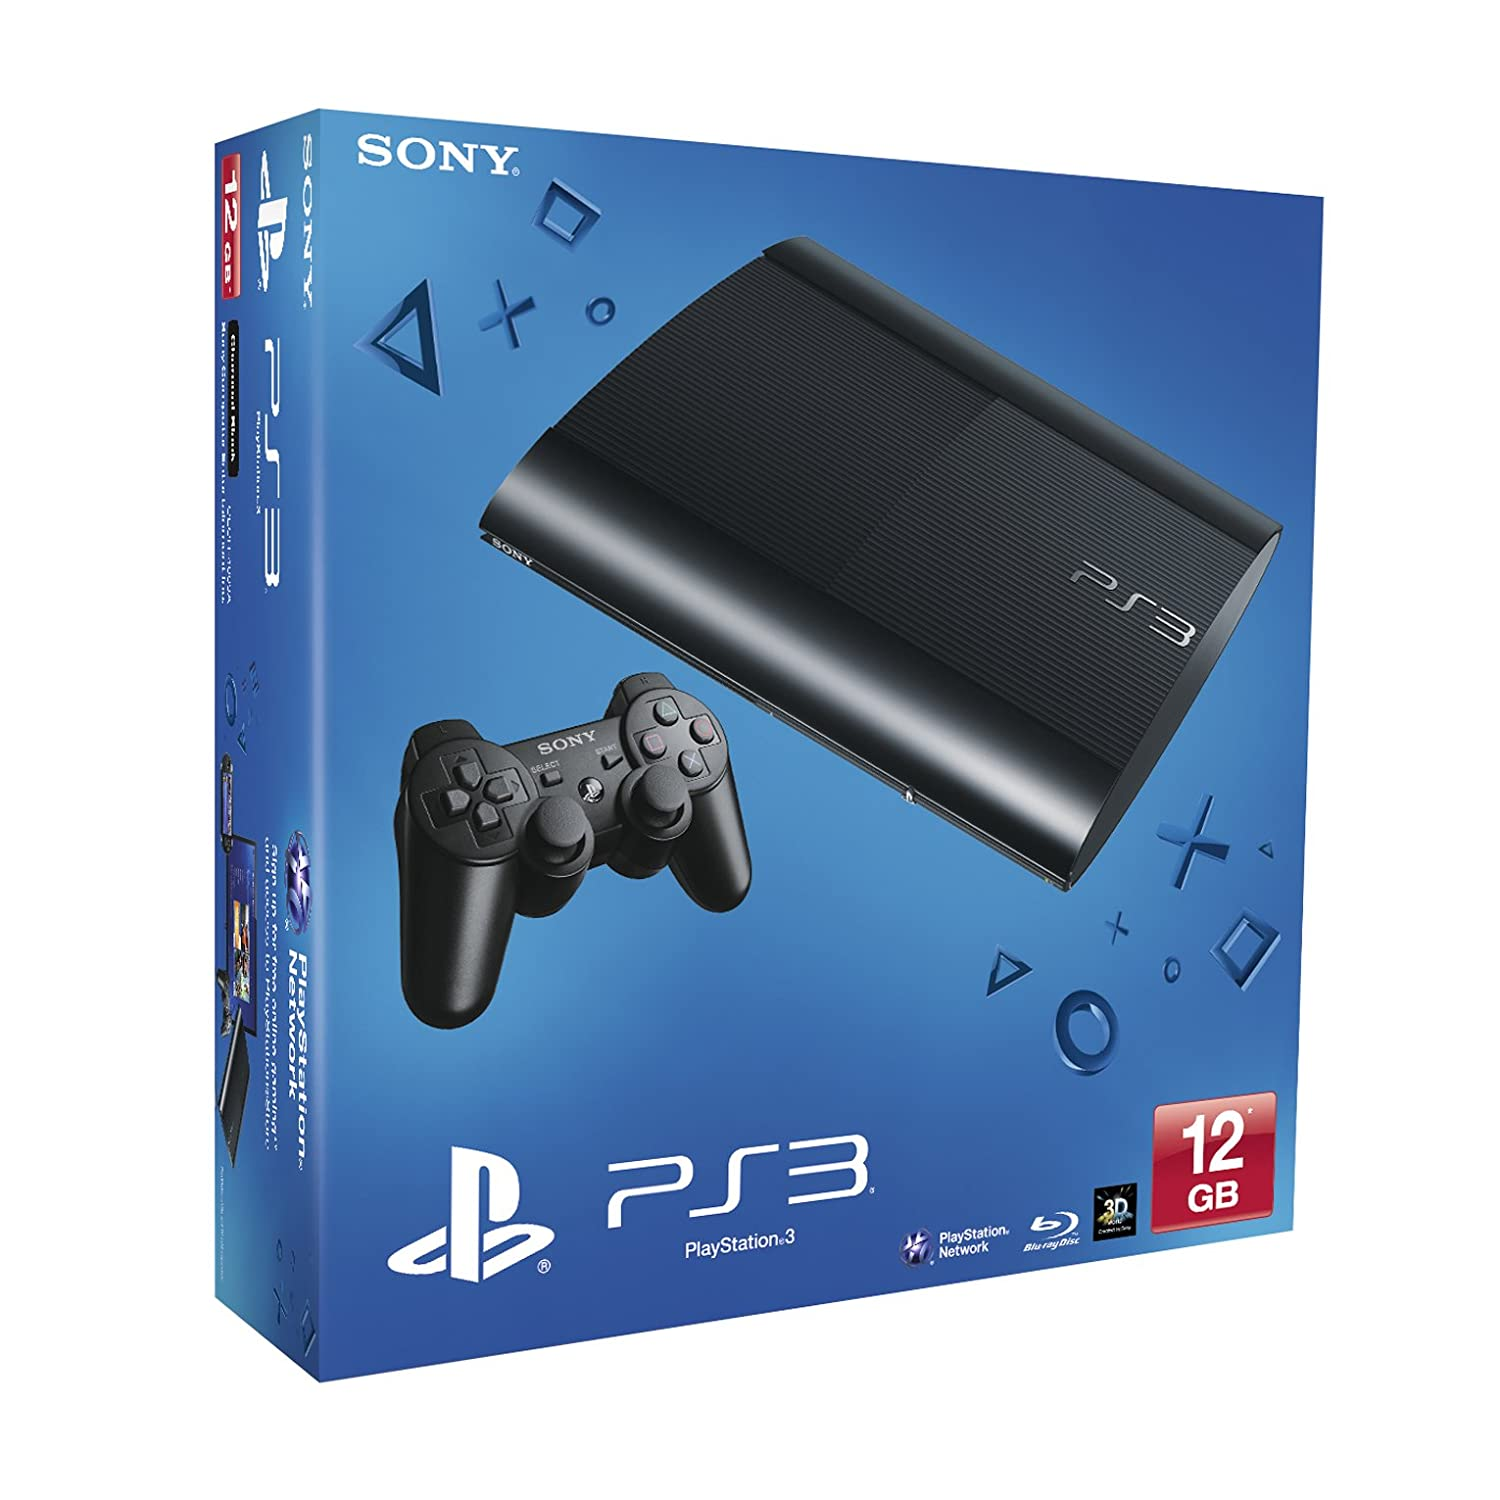 NEW! Sony Playstation 3 PS3 12Gb Super Slim Console Black UK: Amazon ...